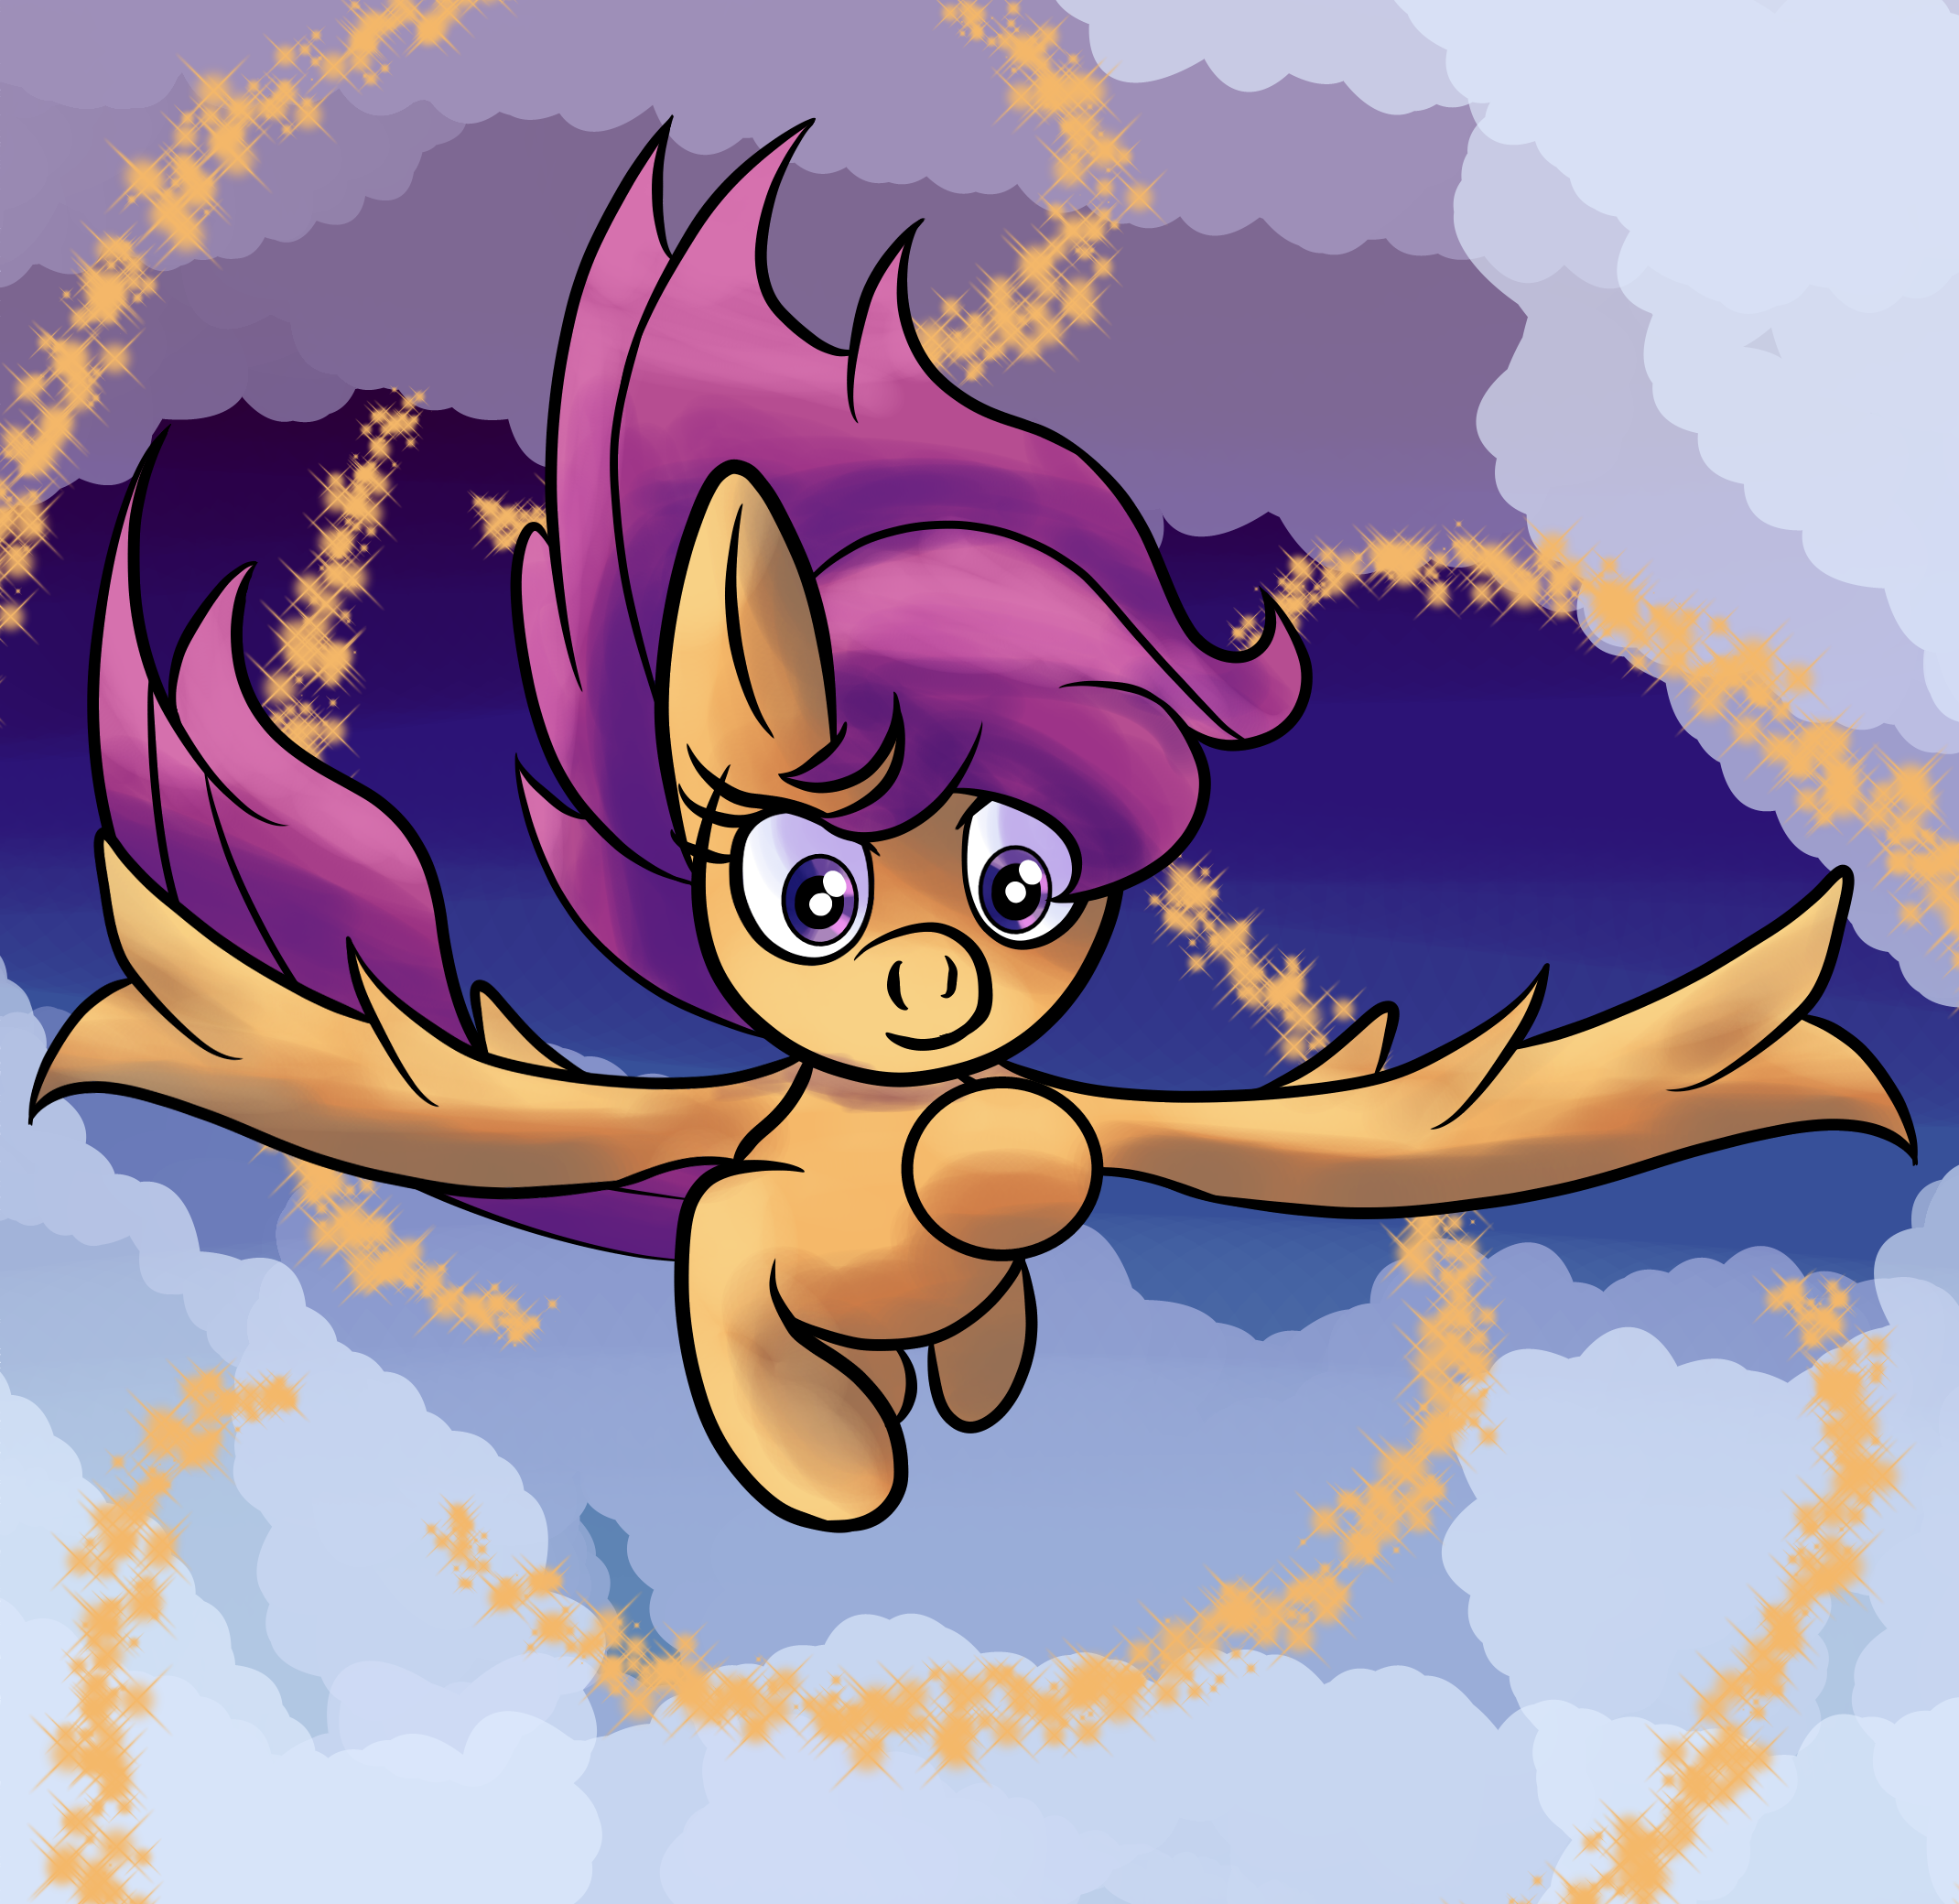 Scootaloo Finding Her Inner Courage By Superhypersonic2000 On Newgrounds Romi park (born 1972), korean. newgrounds com